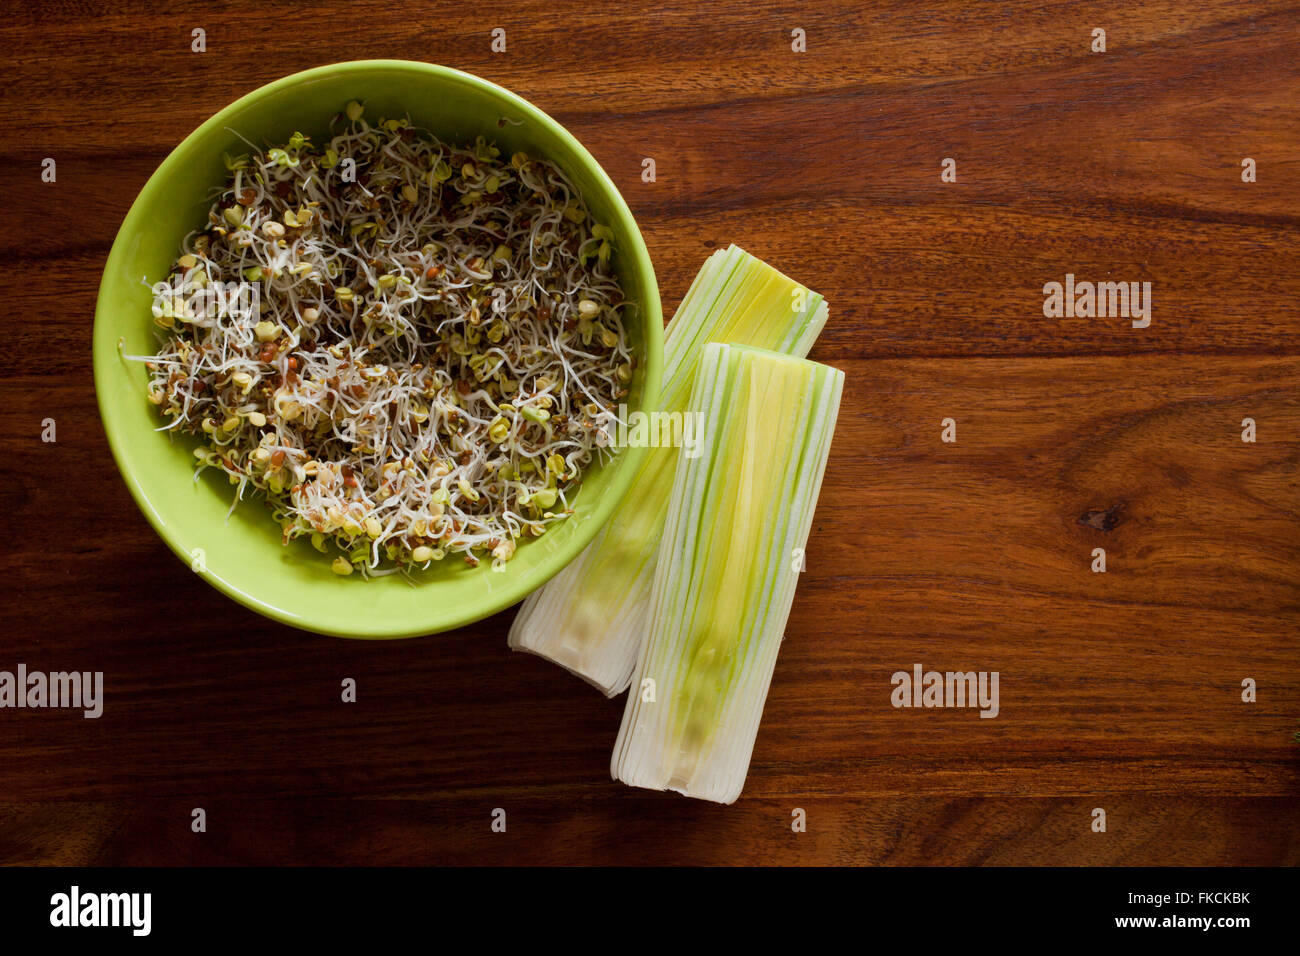 Fresh green and white vegetables - Stock Image